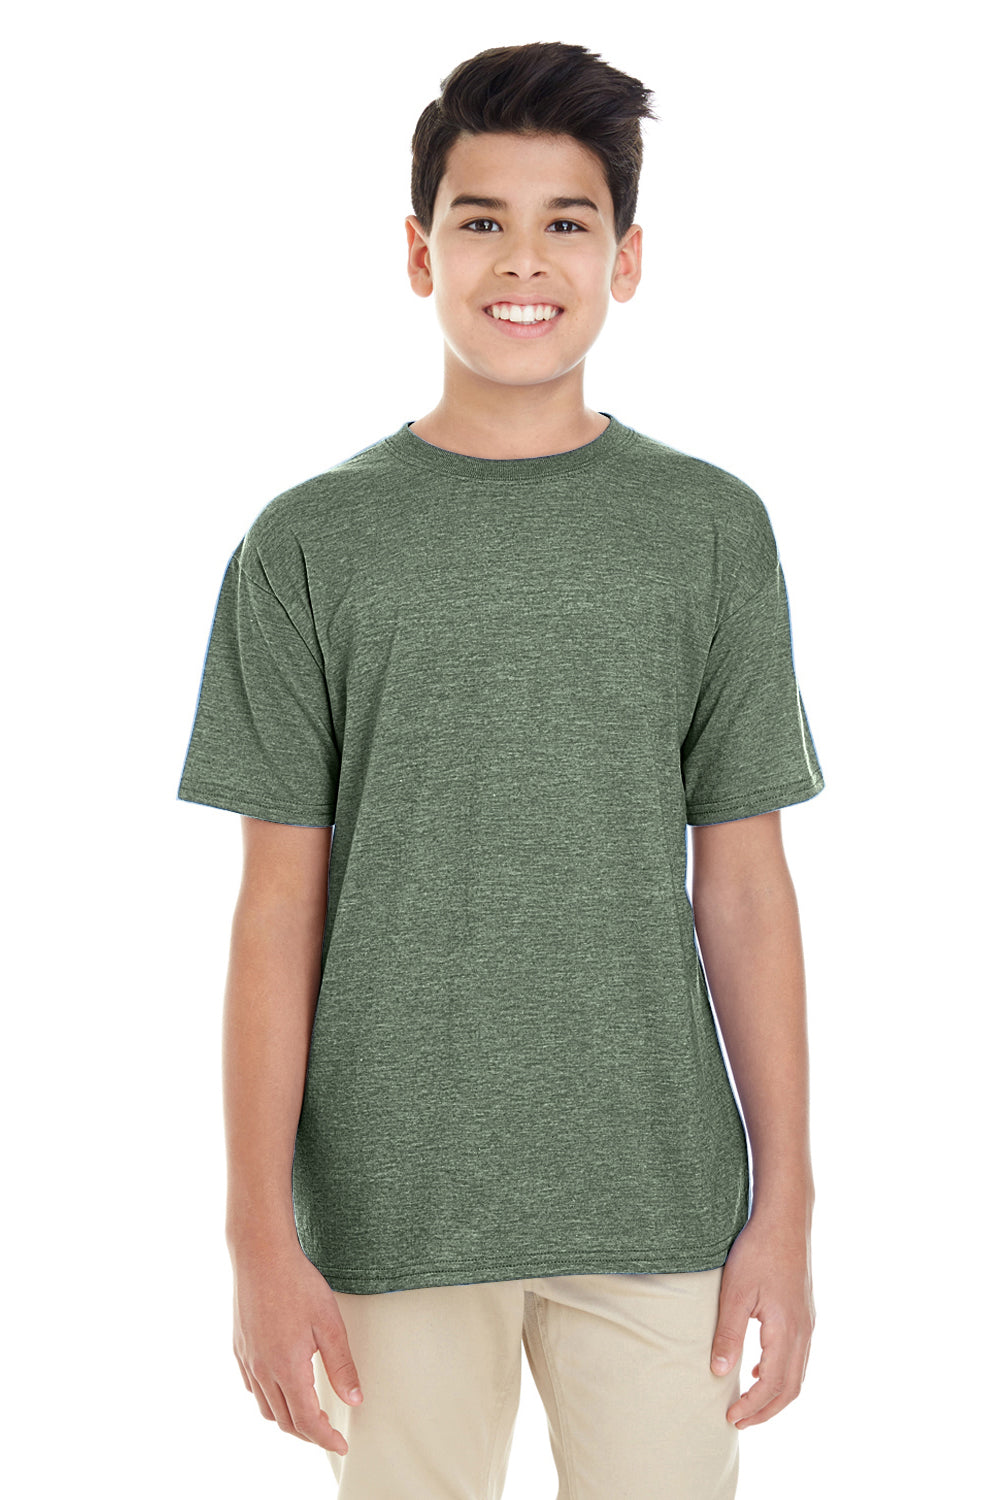 Gildan G645B Youth Softstyle Short Sleeve Crewneck T-Shirt Heather Military Green Front